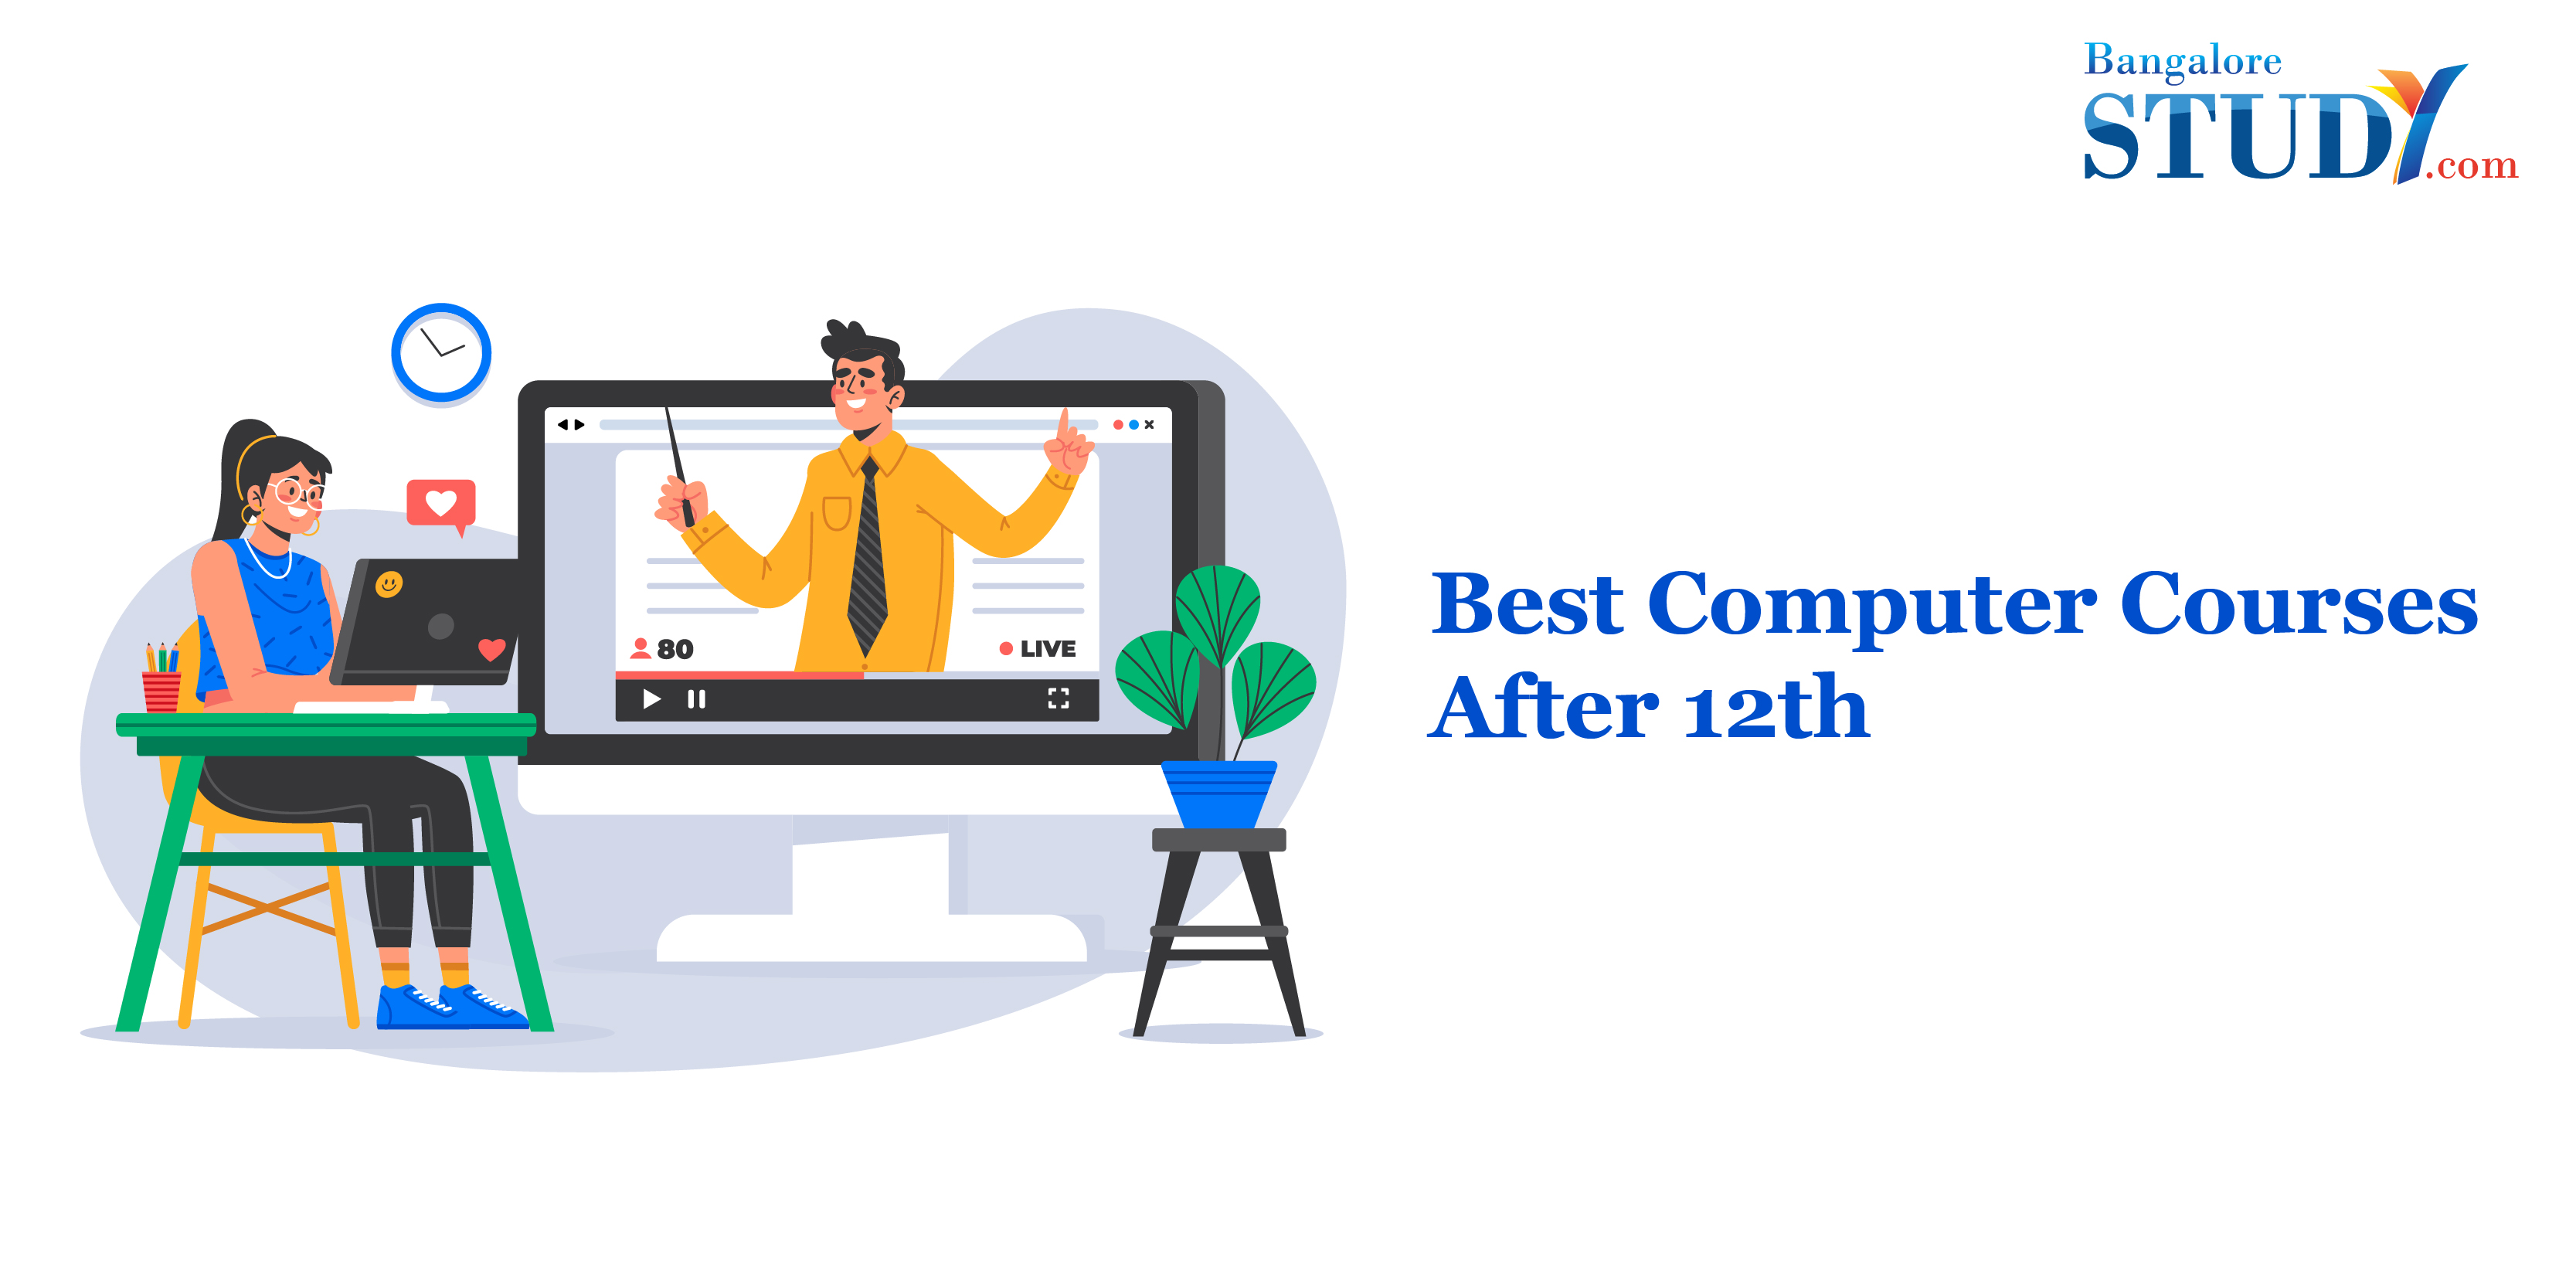 Best Computer Courses After 12th